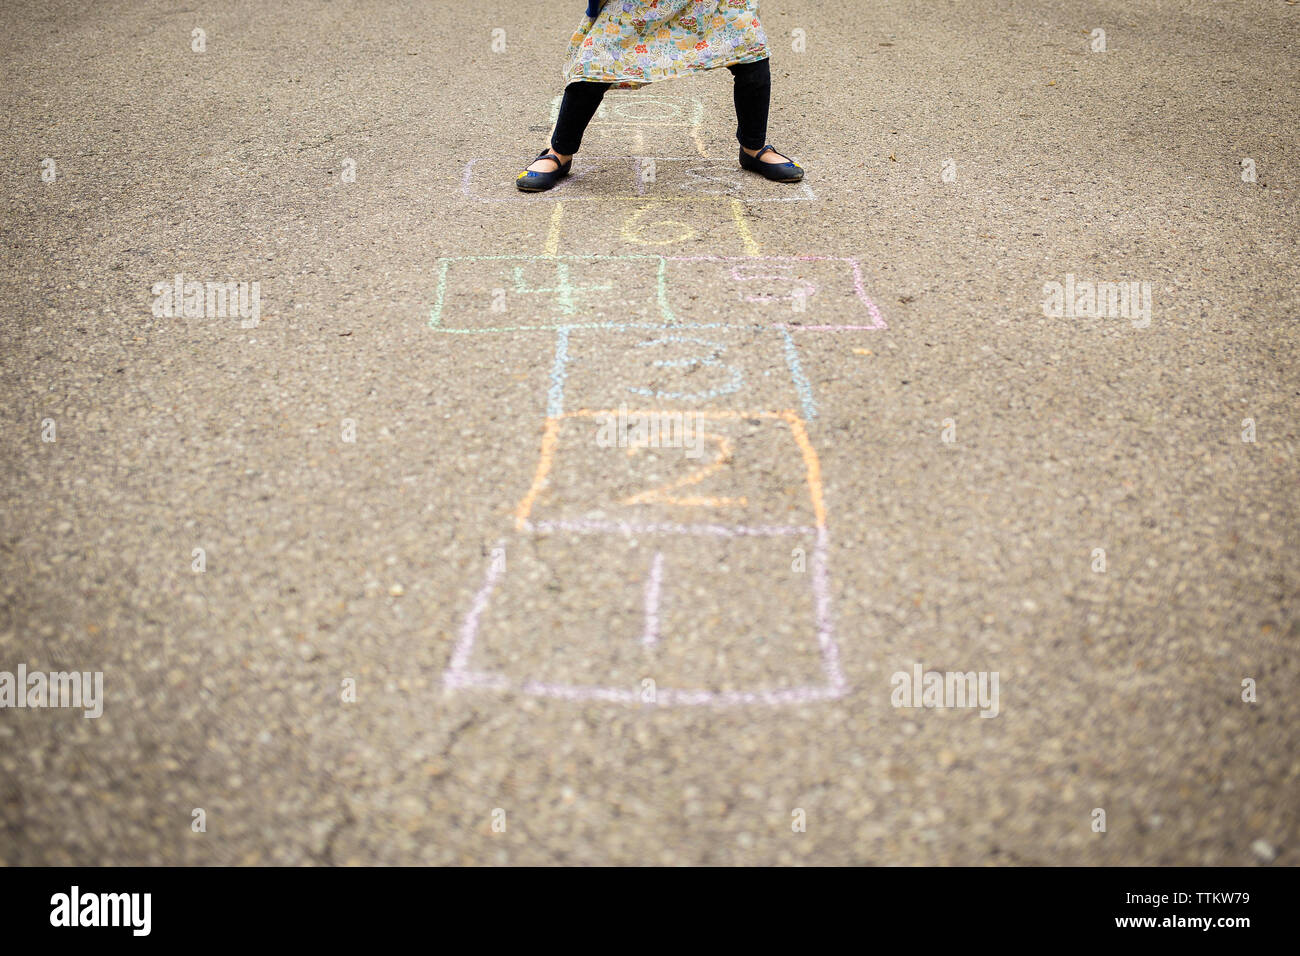 Low section of girl playing hopscotch on street - Stock Image